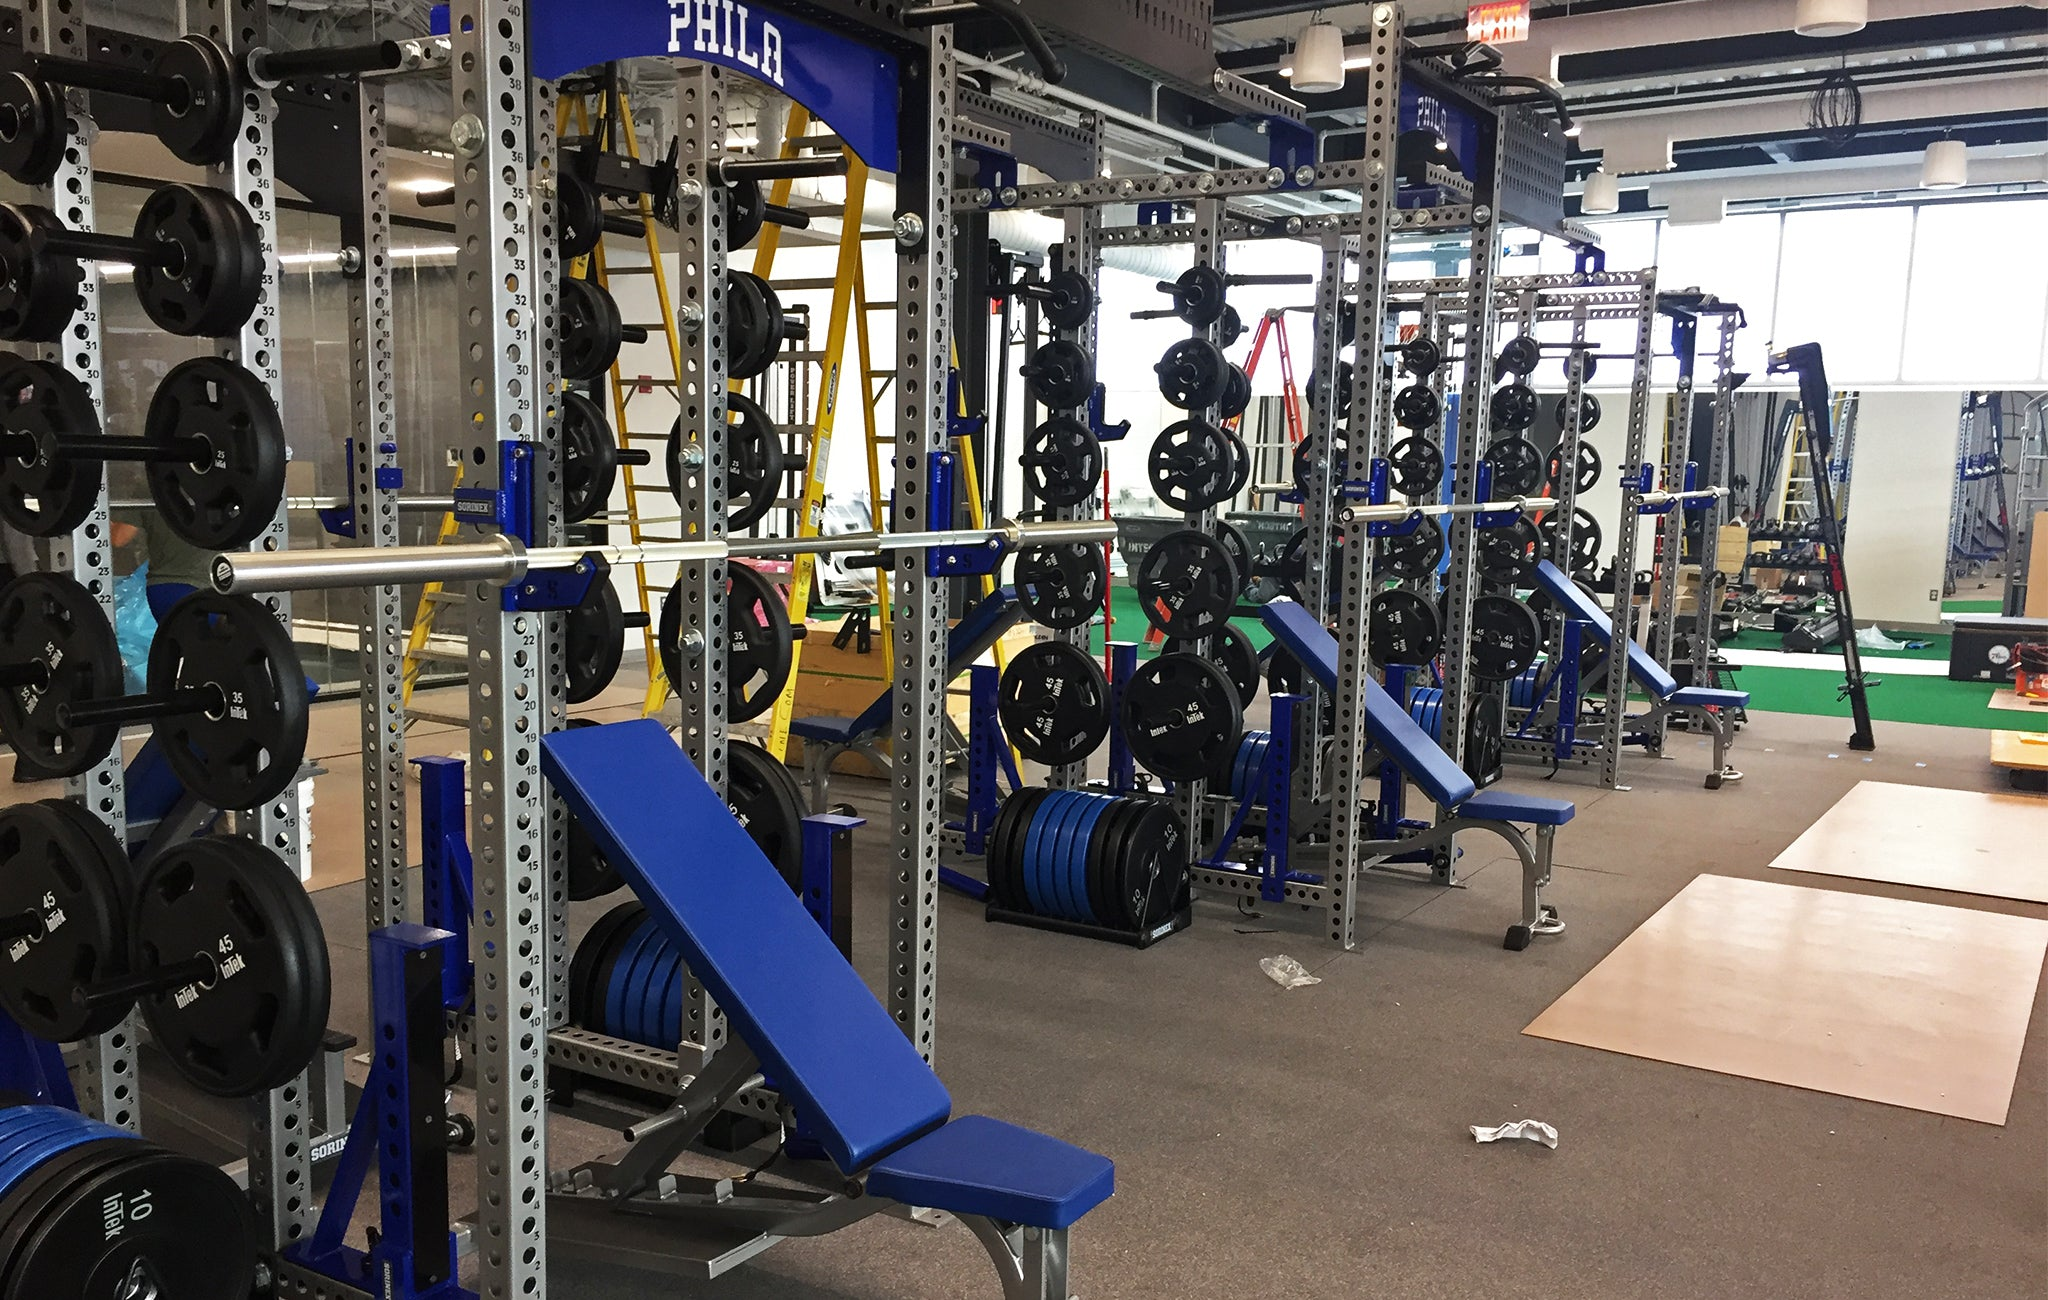 Philadelphia 76ers Weight Room